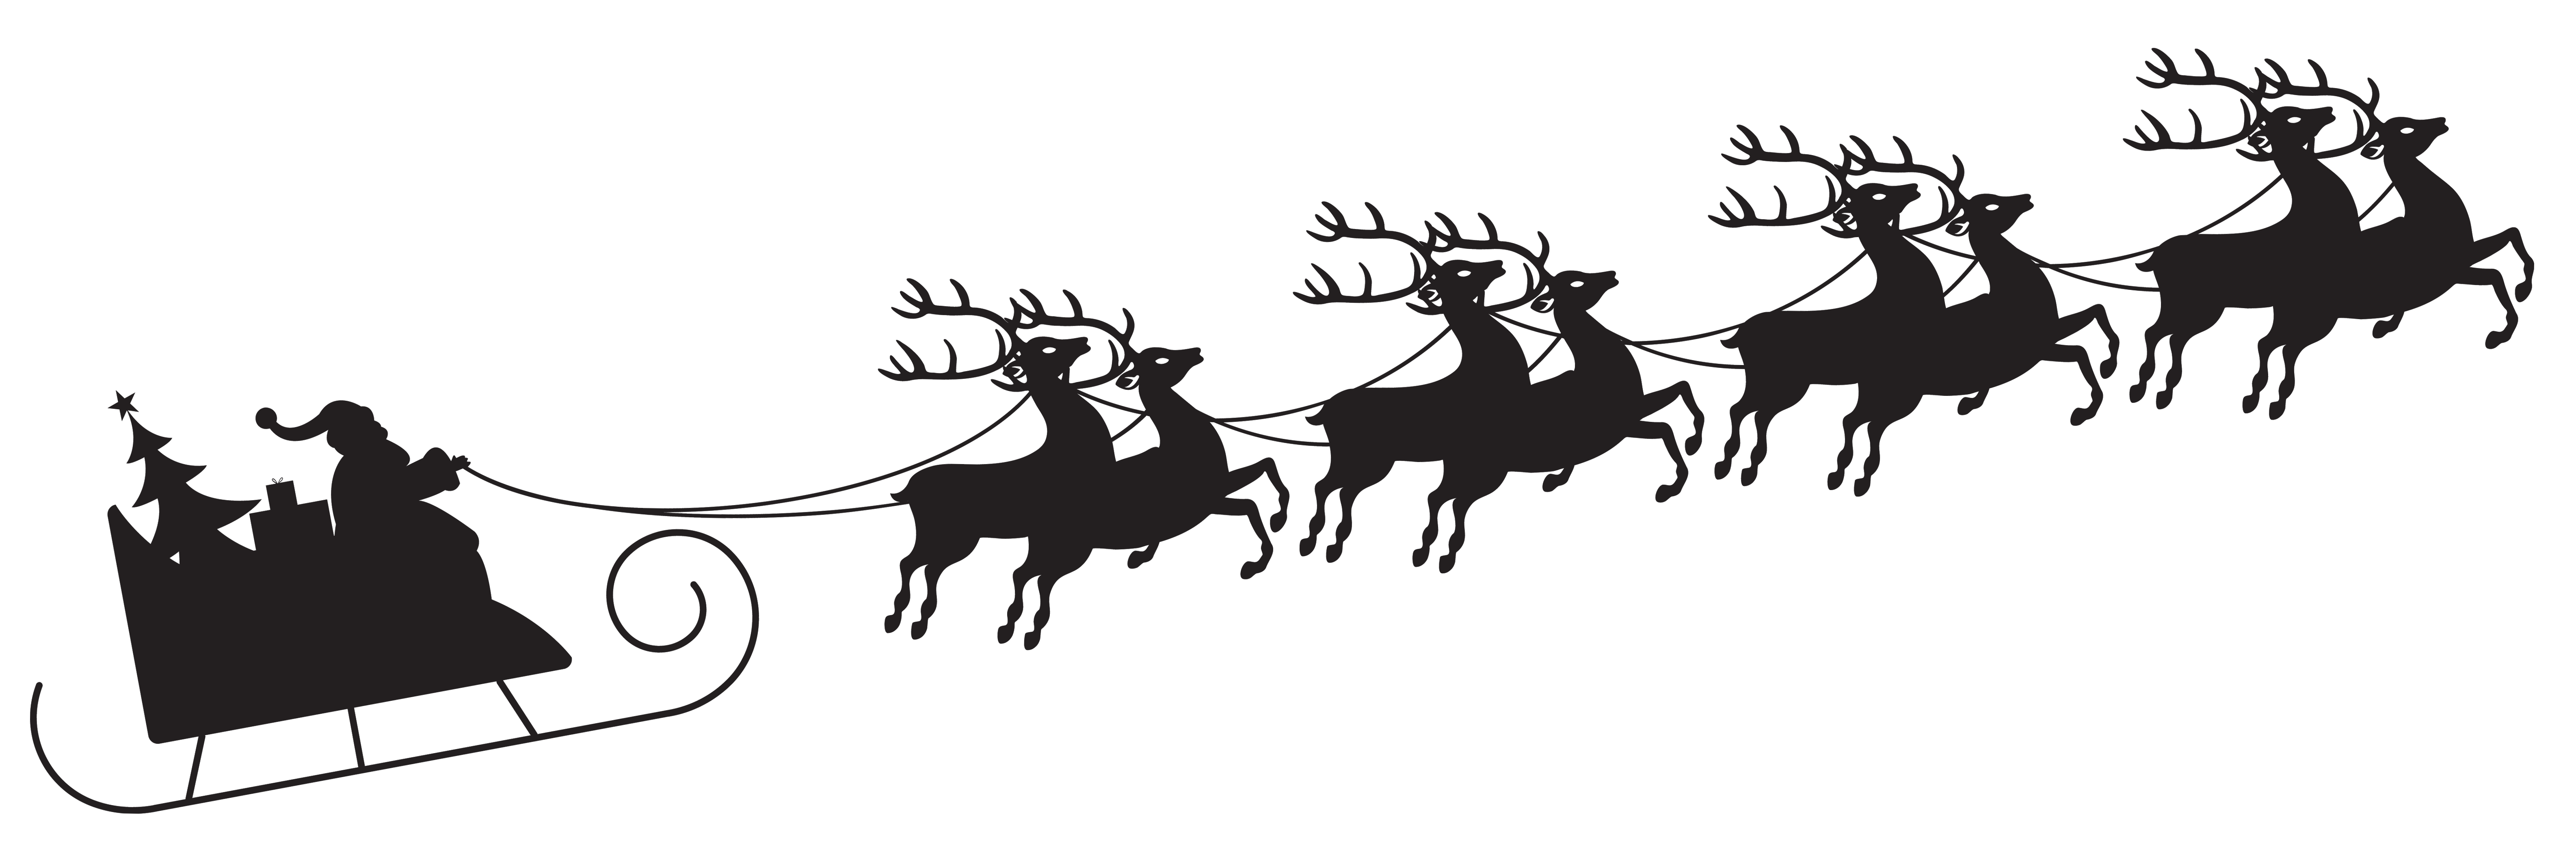 Santa with Sleigh Silhouette Transparent PNG Clip Art Image.